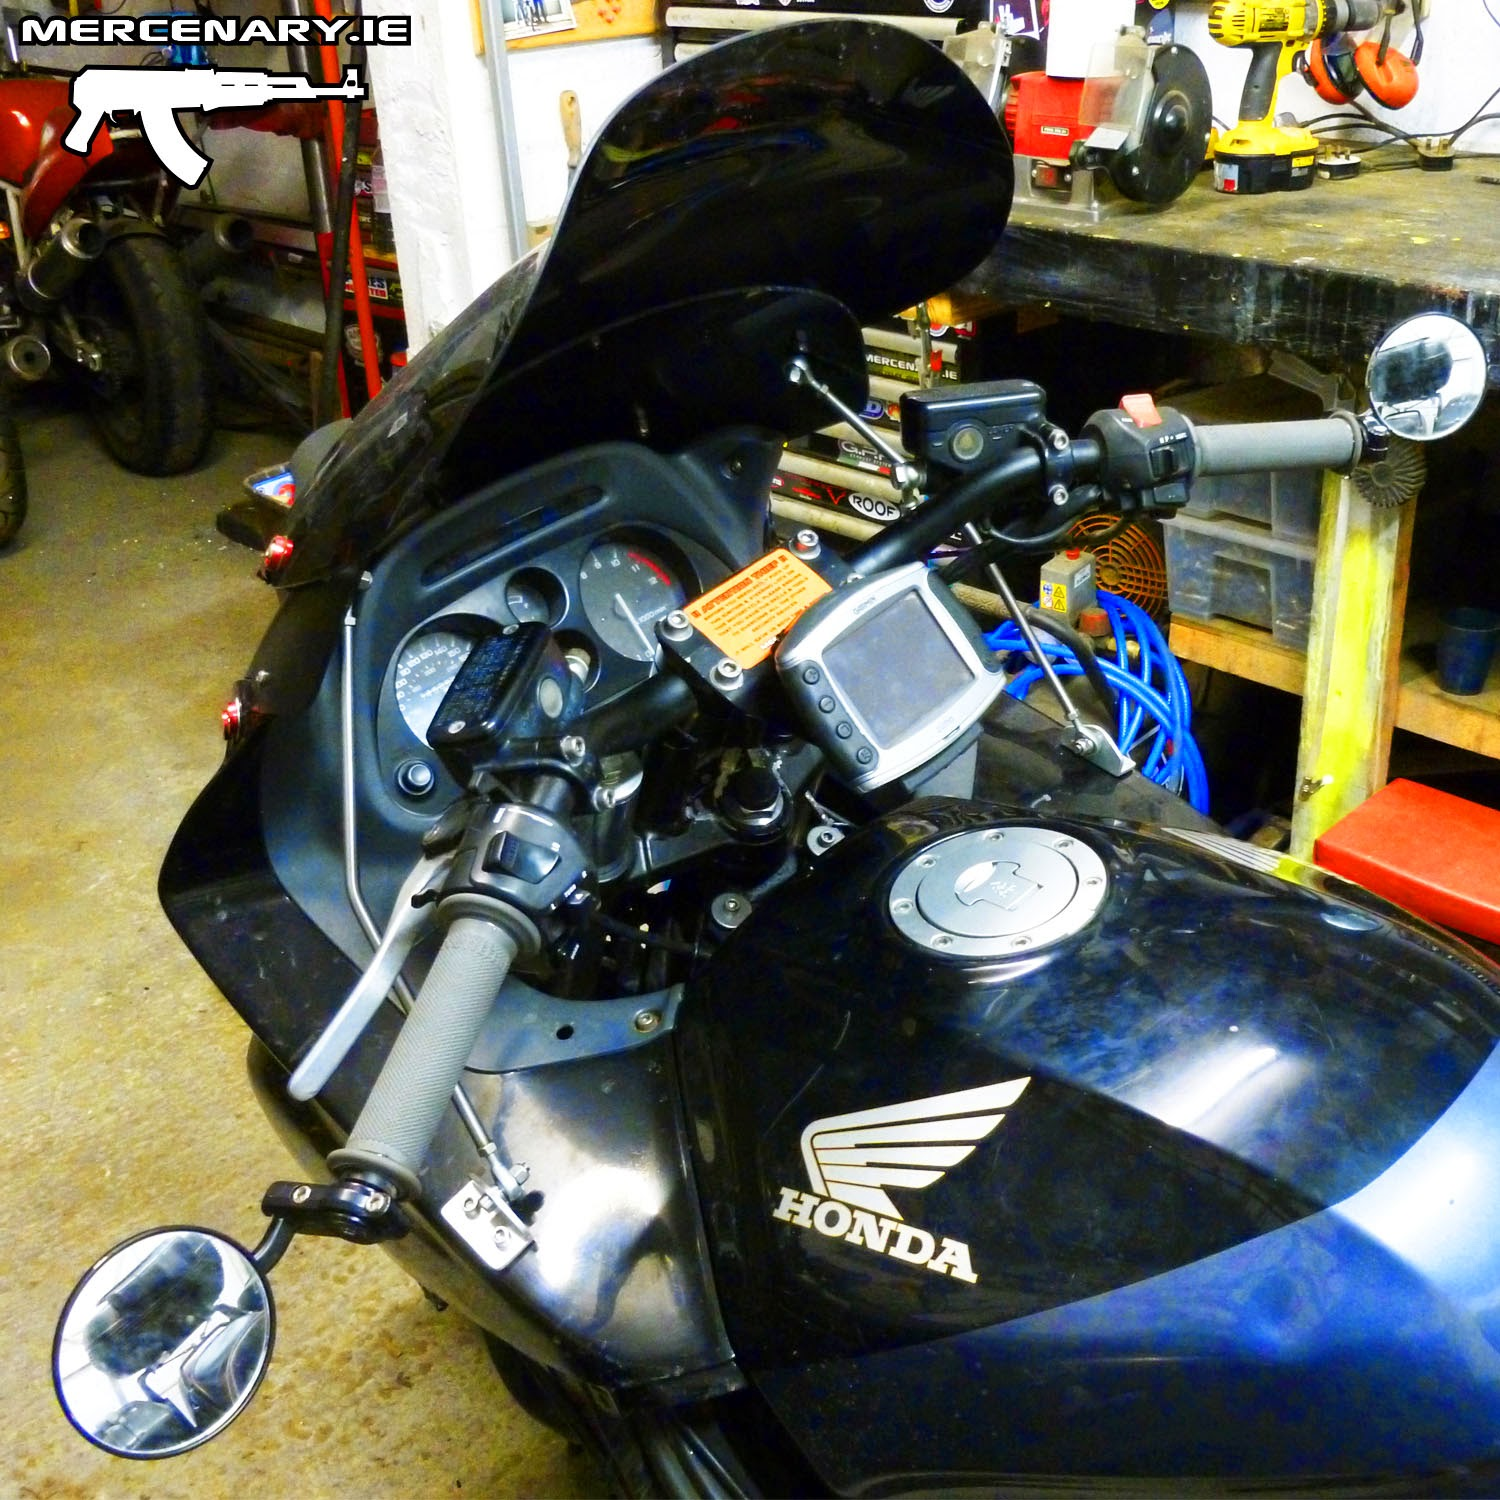 Mercenary garage cbr1000f touring modifications for Garage modification